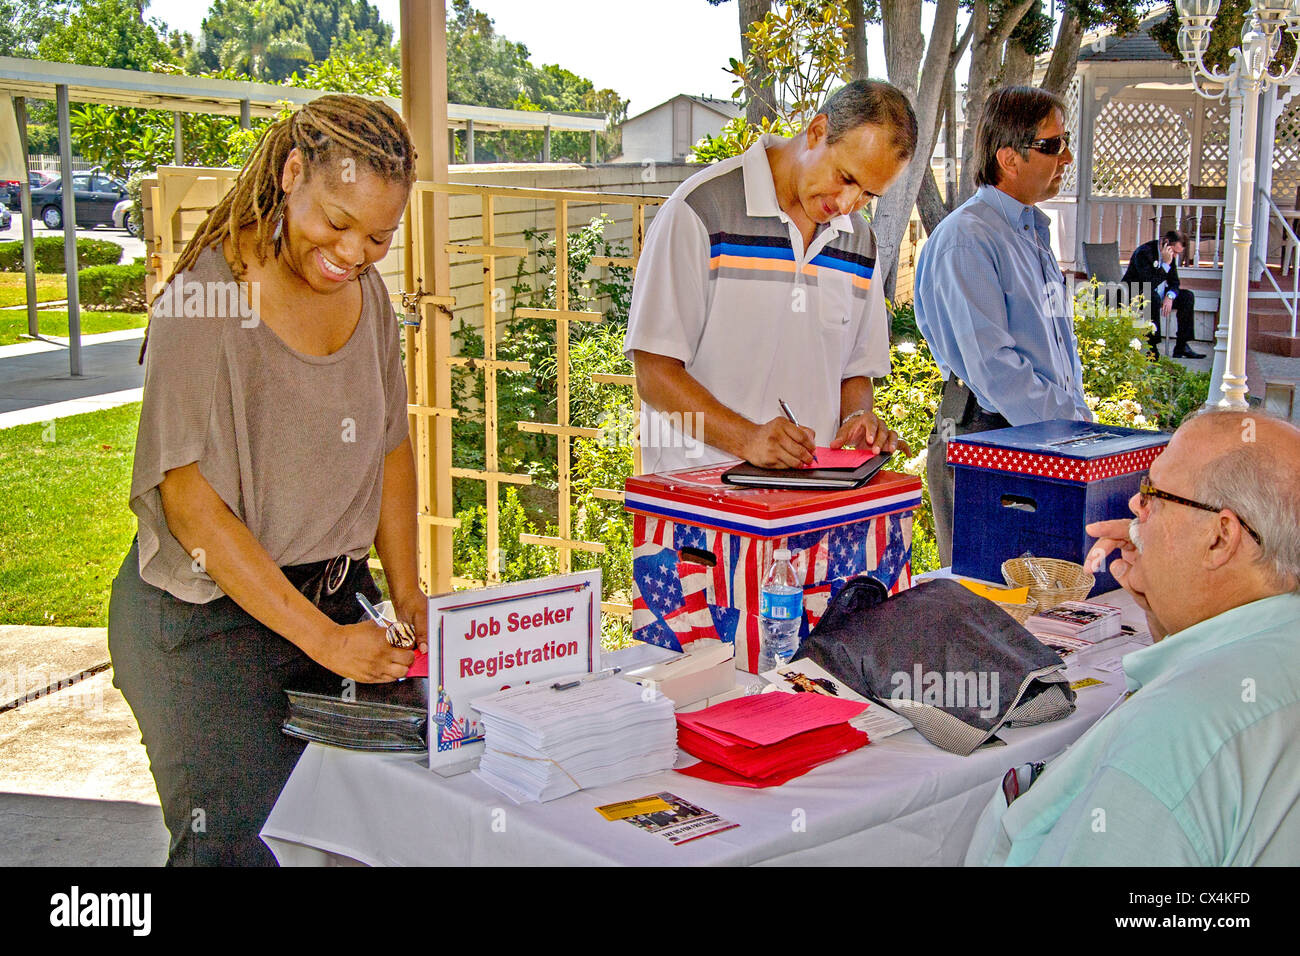 A smiling Africa-American woman registers at a job fair for military veterans in Santa Ana, CA. - Stock Image